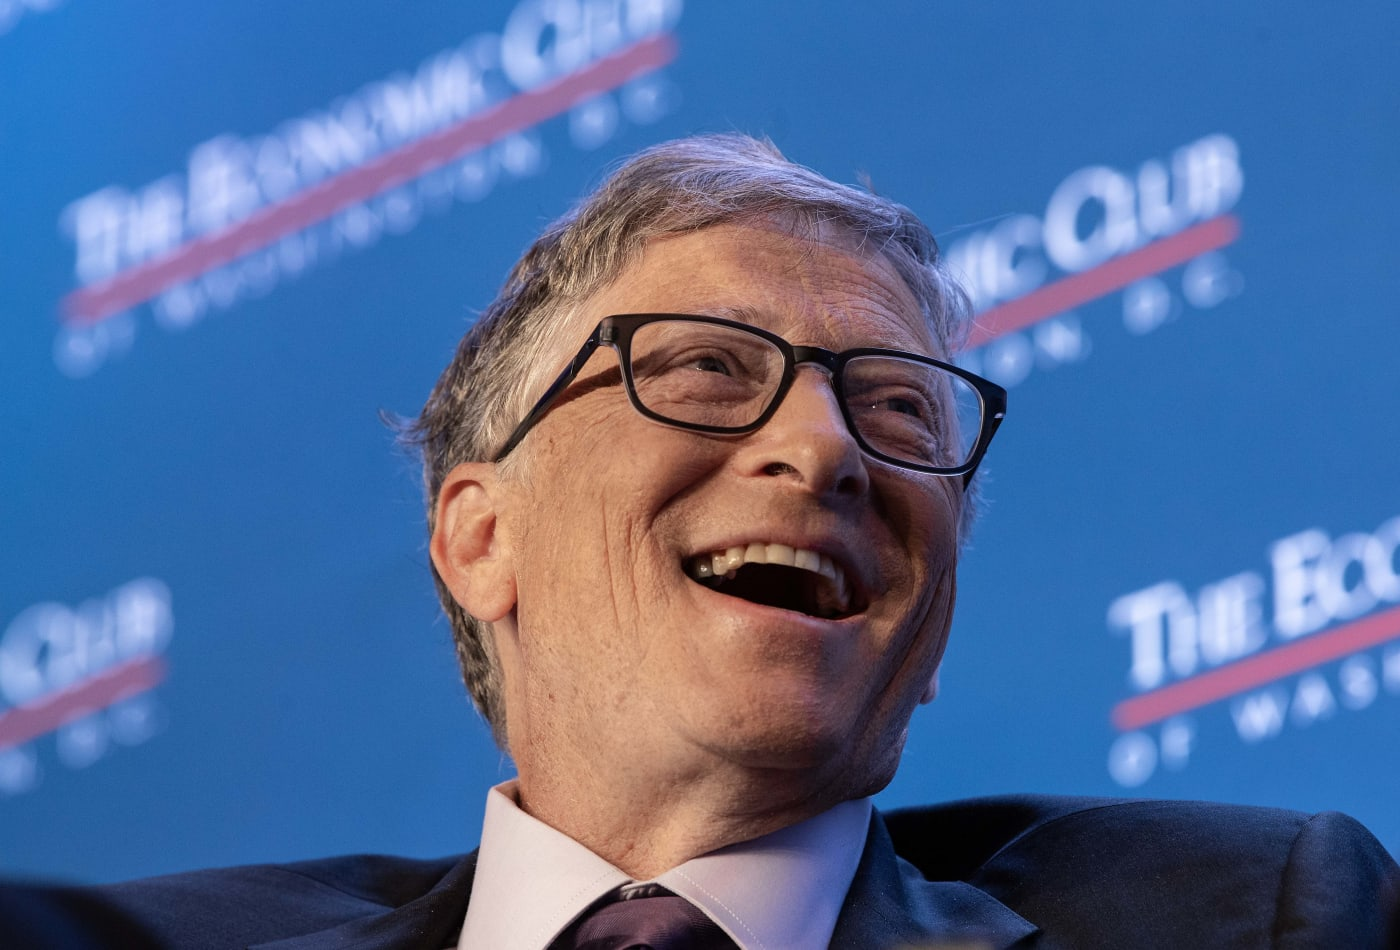 Bill Gates sorridente